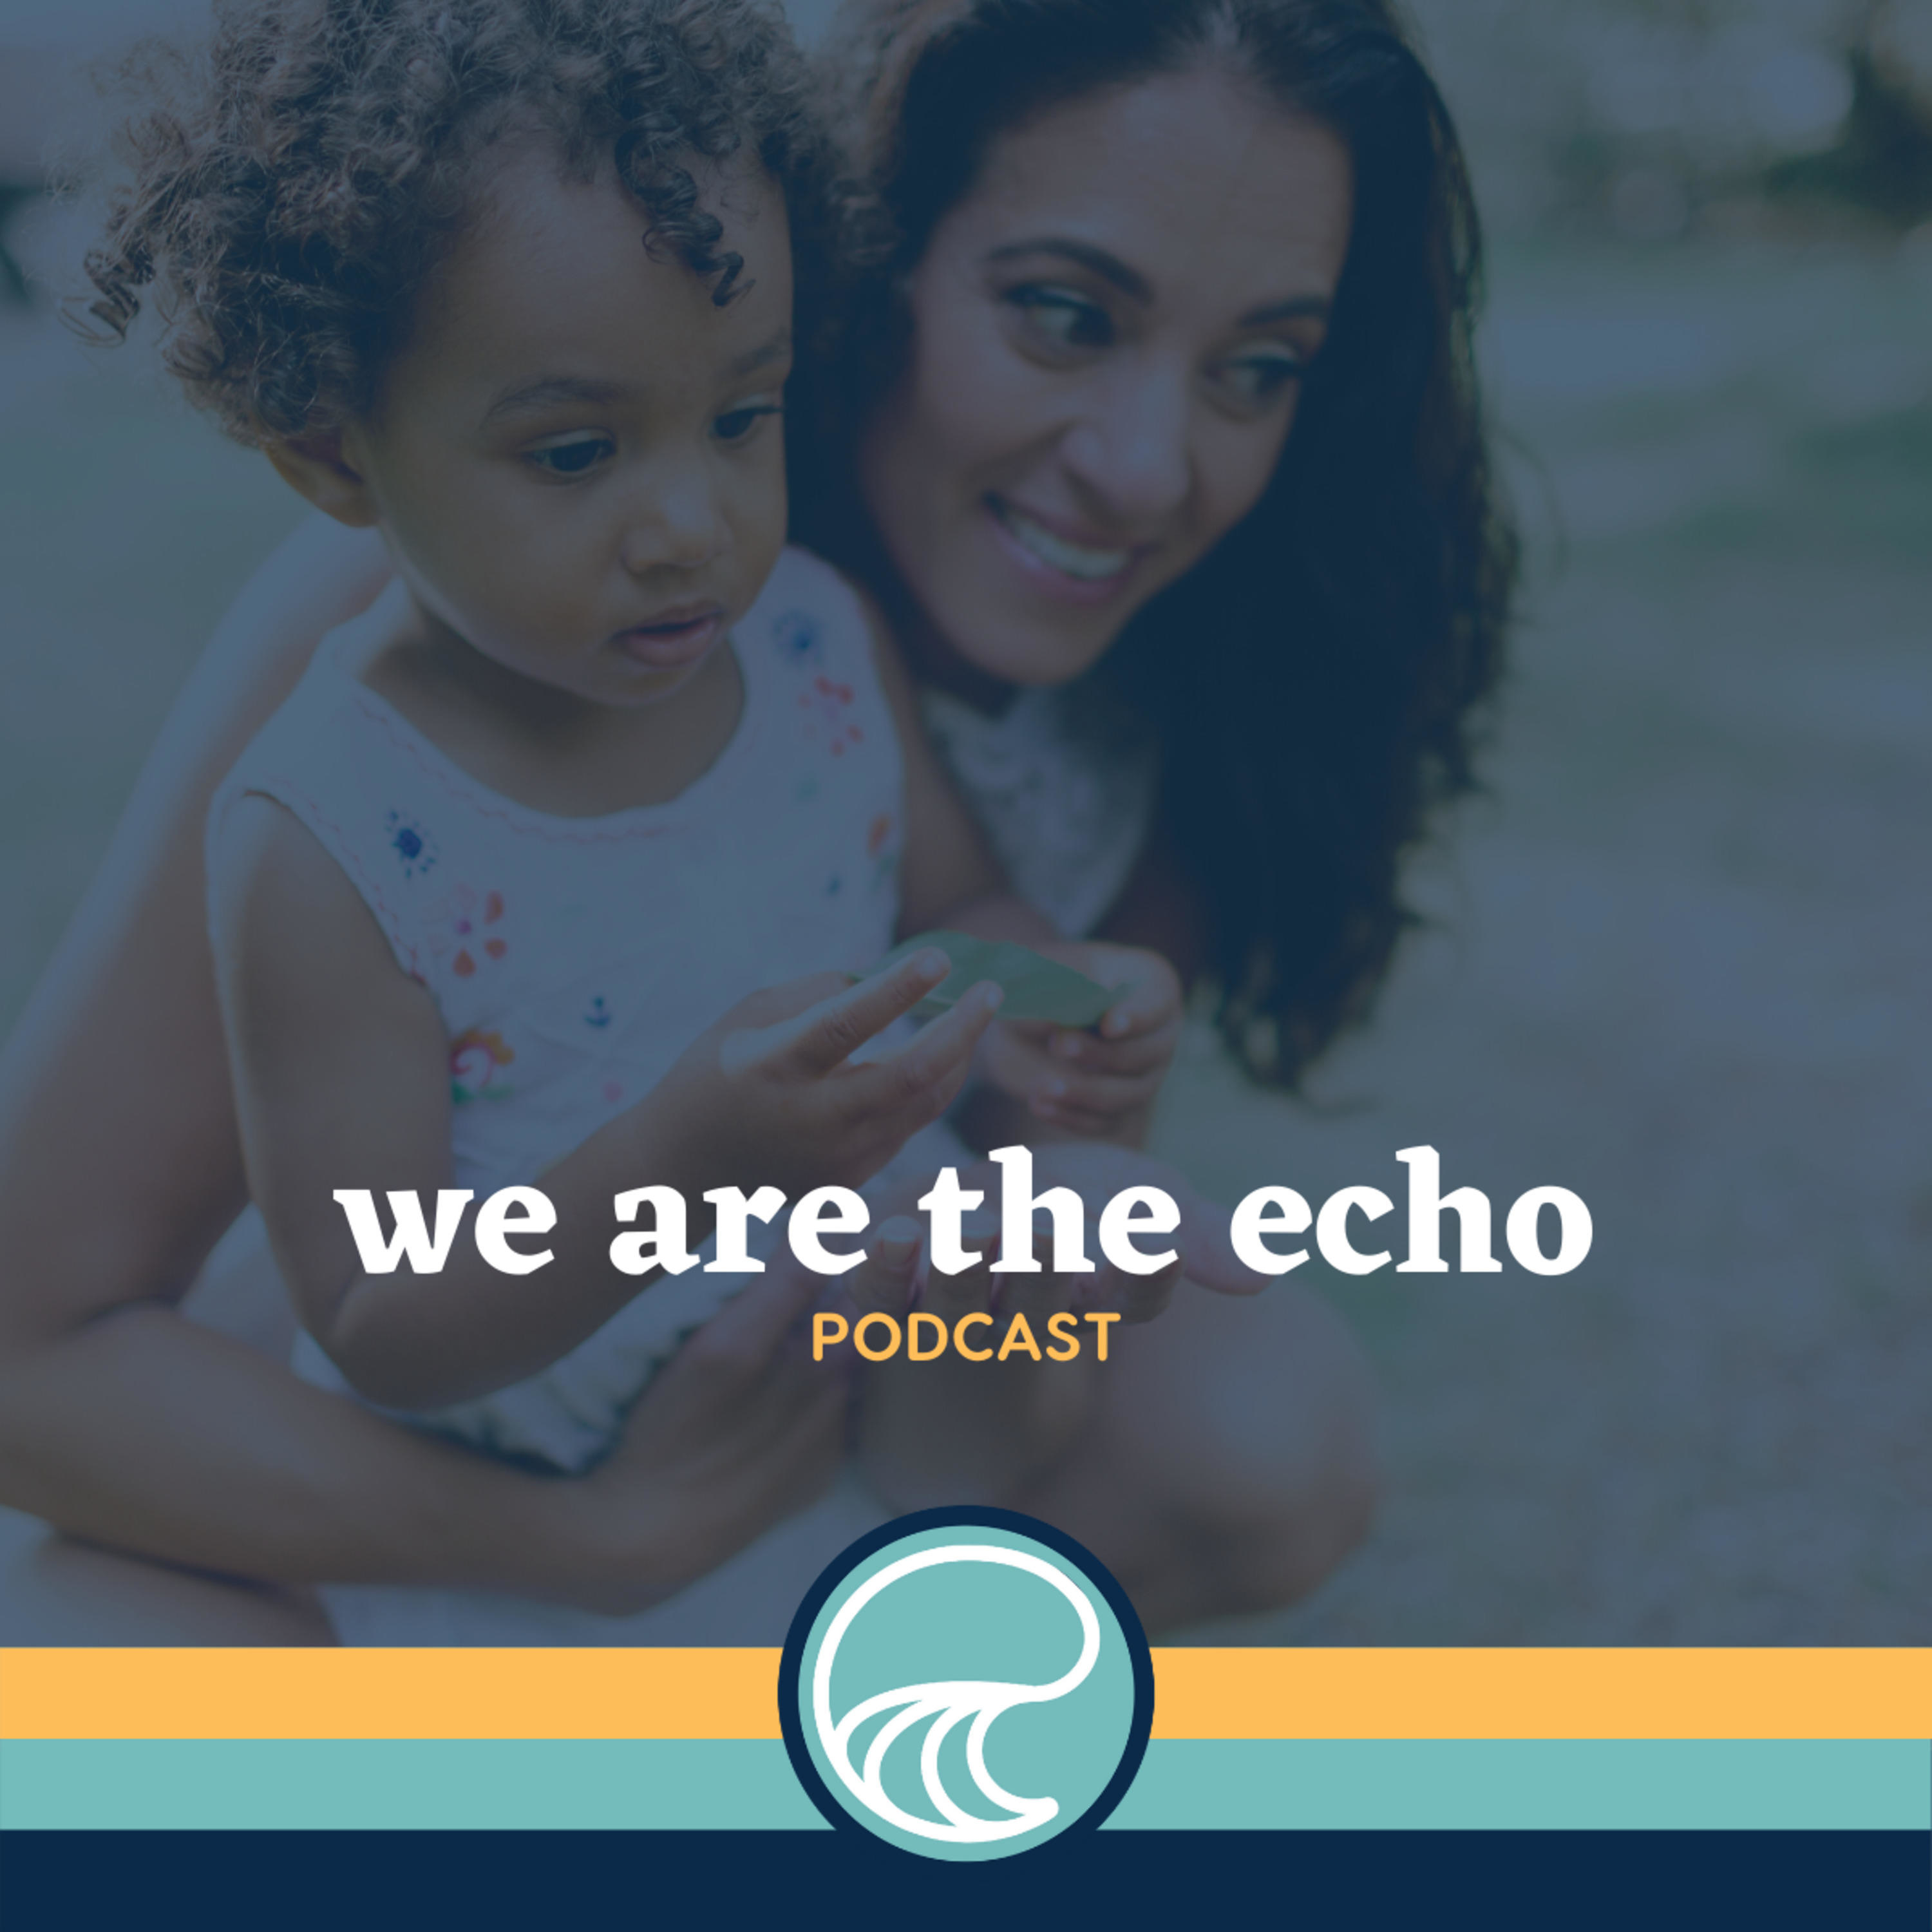 We Are the ECHO